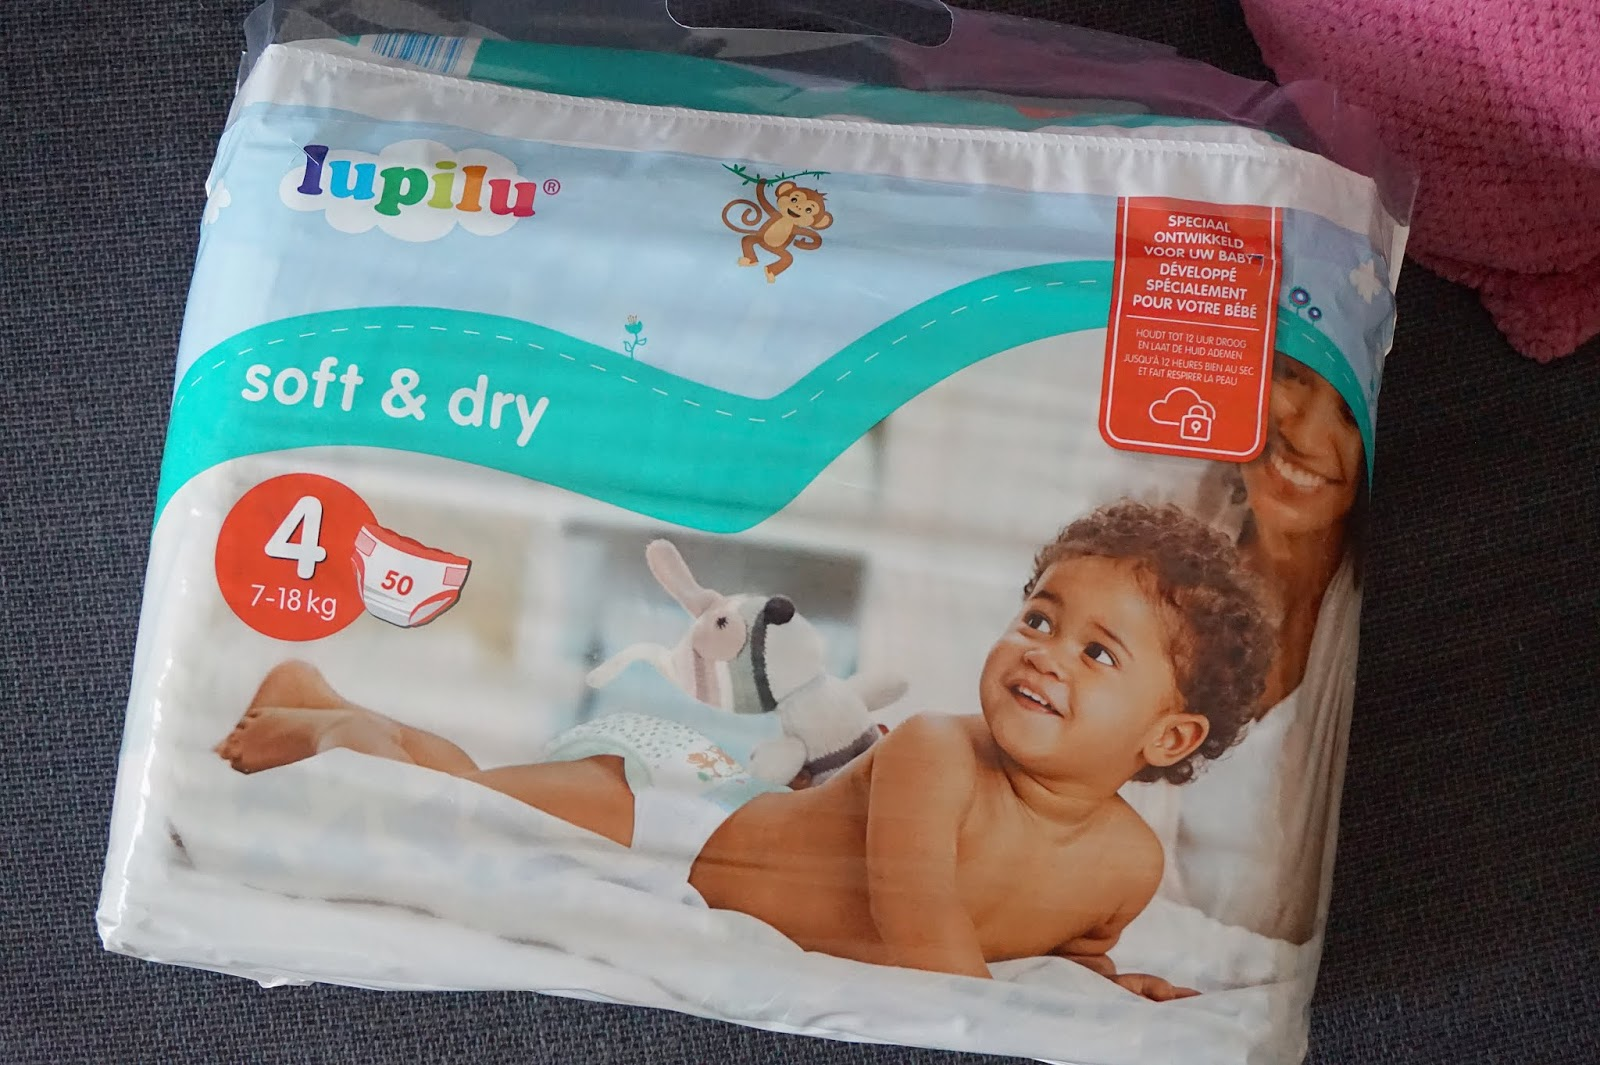 lidl lupilu soft & dry luiers